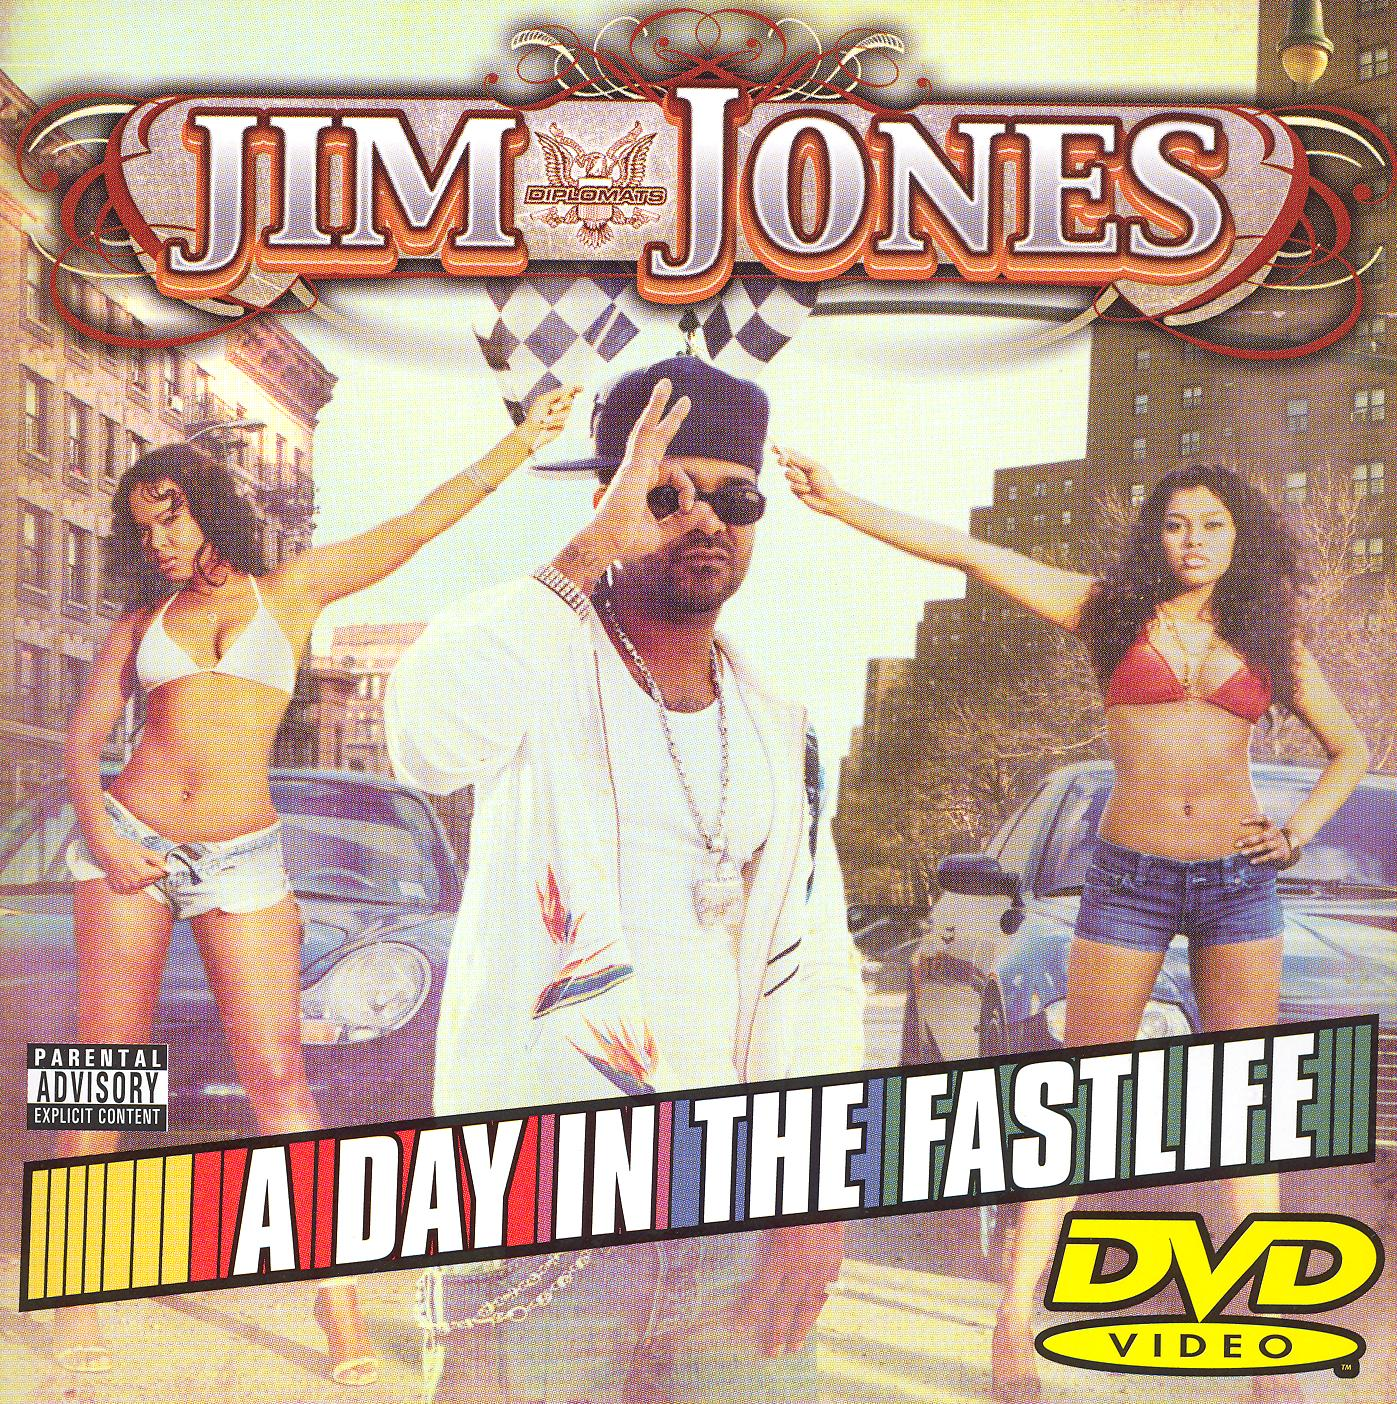 Jim Jones: A Day in the Fastlife